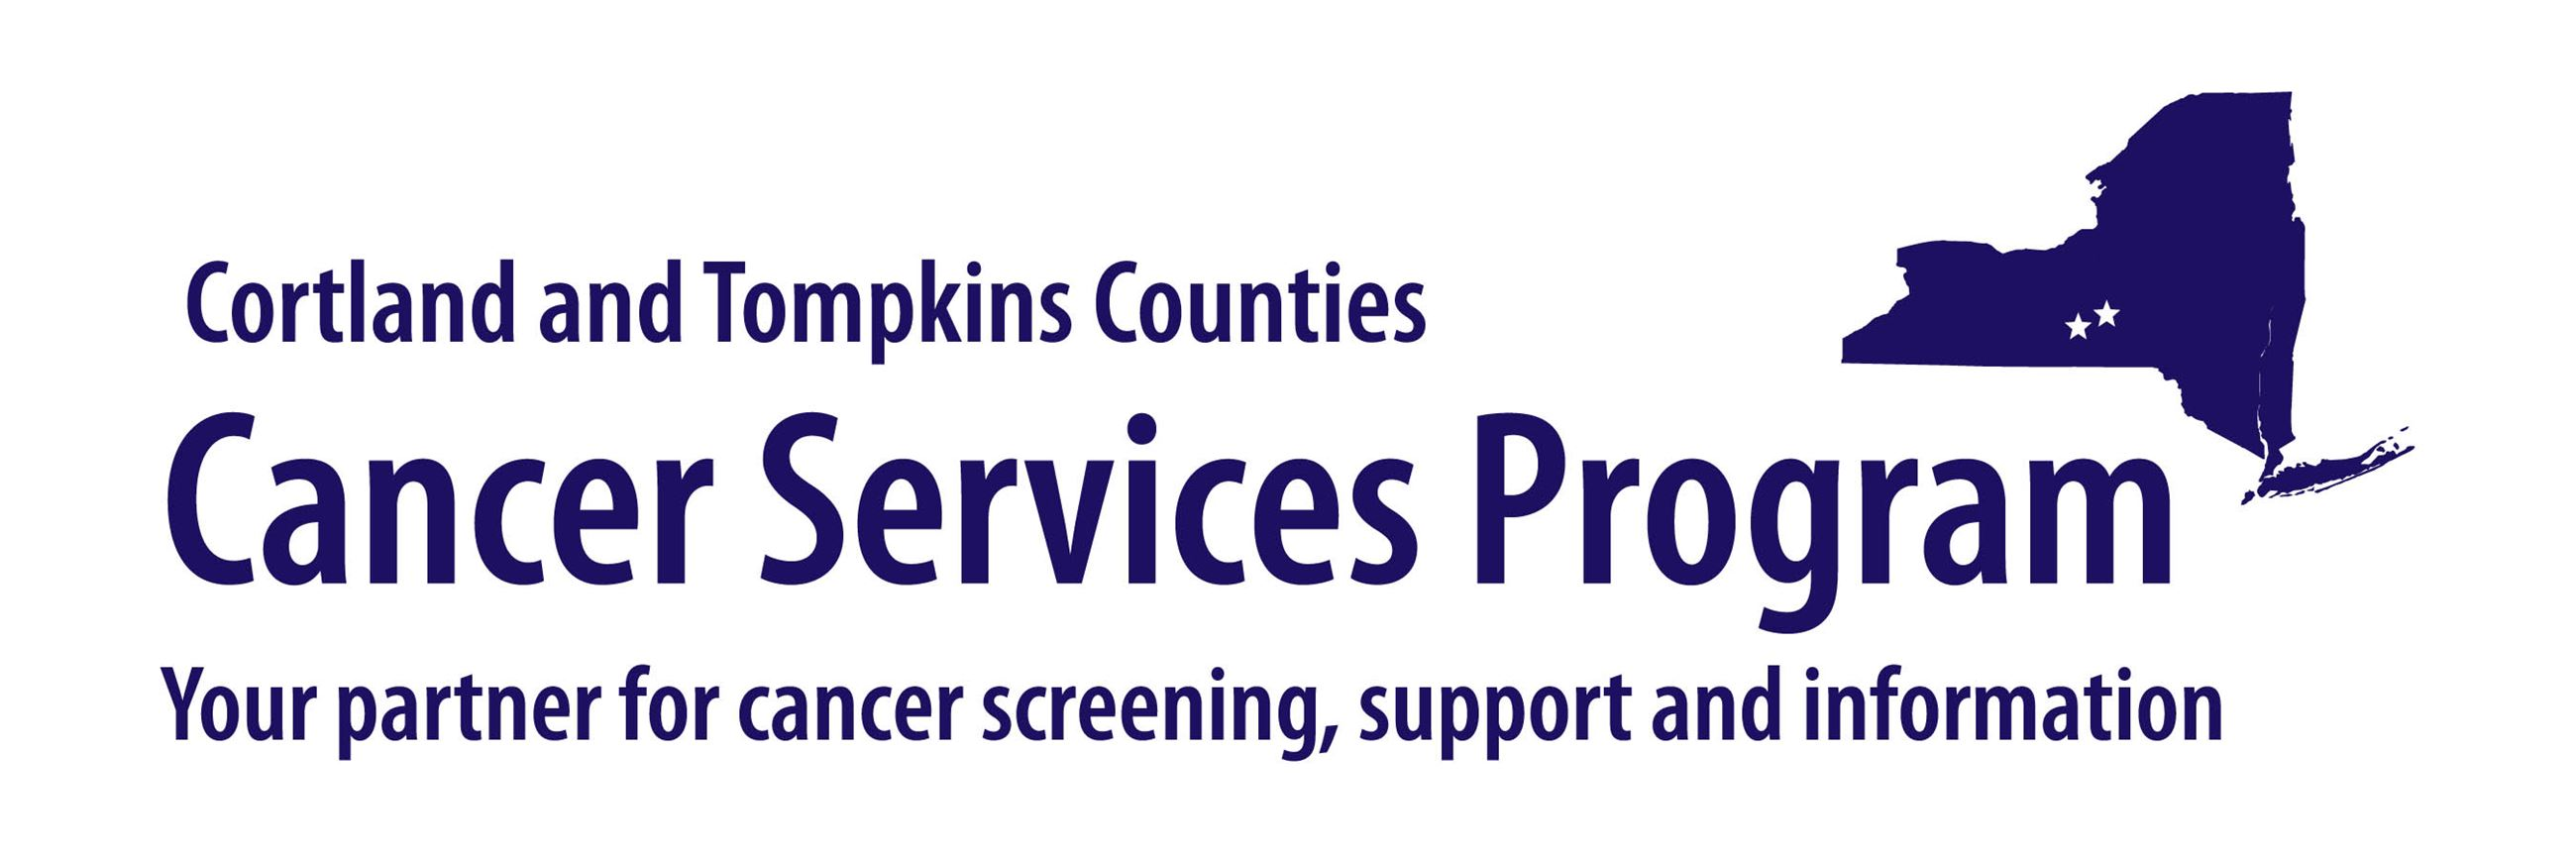 Cortland and Tompkins Counties Cancer Services Program logo